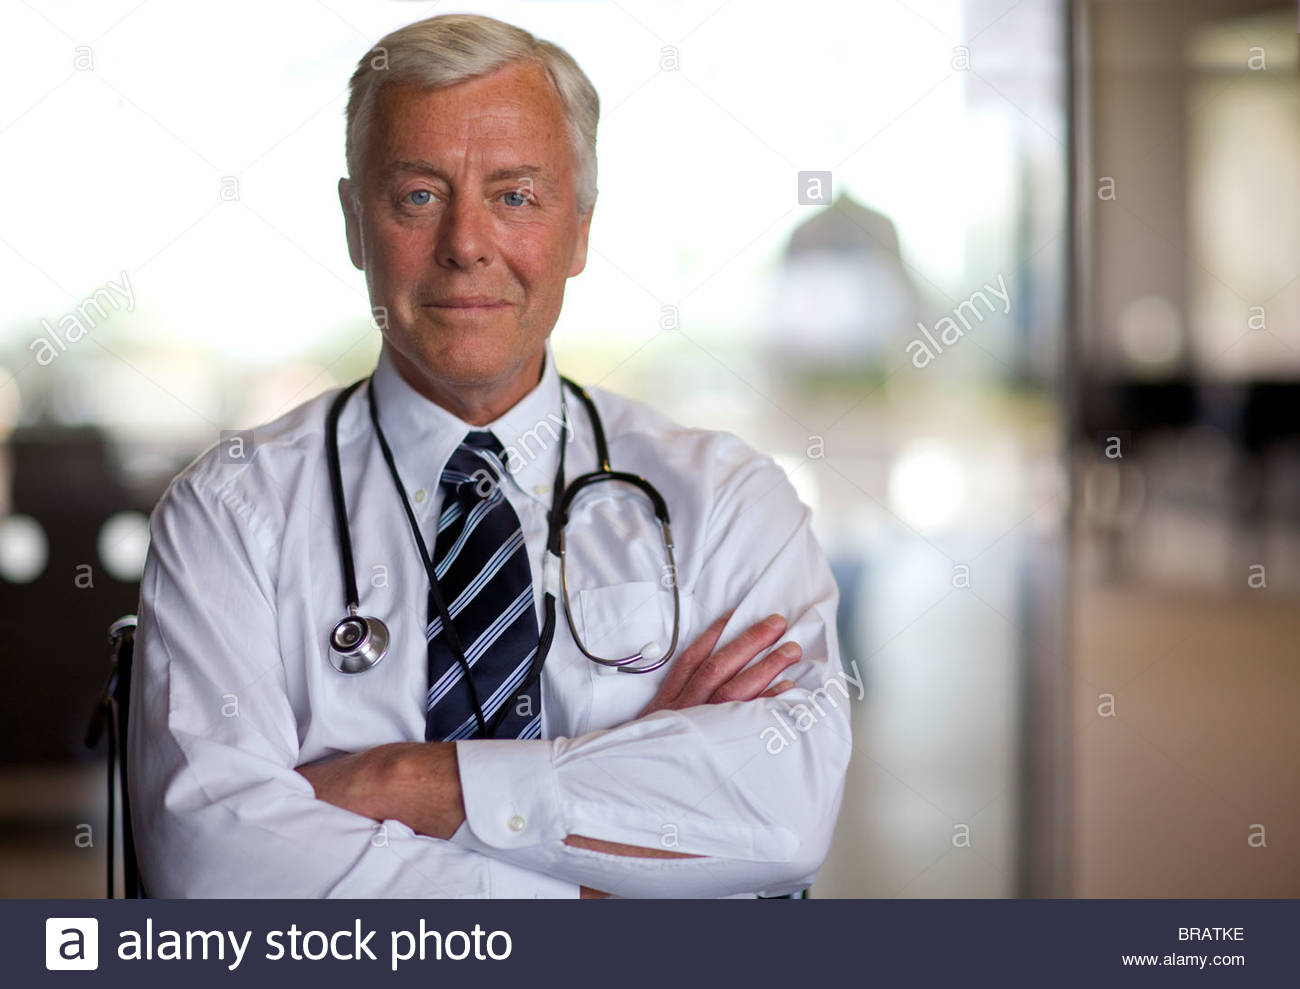 Serious doctor with stethoscope and arms crossed - Stock Image